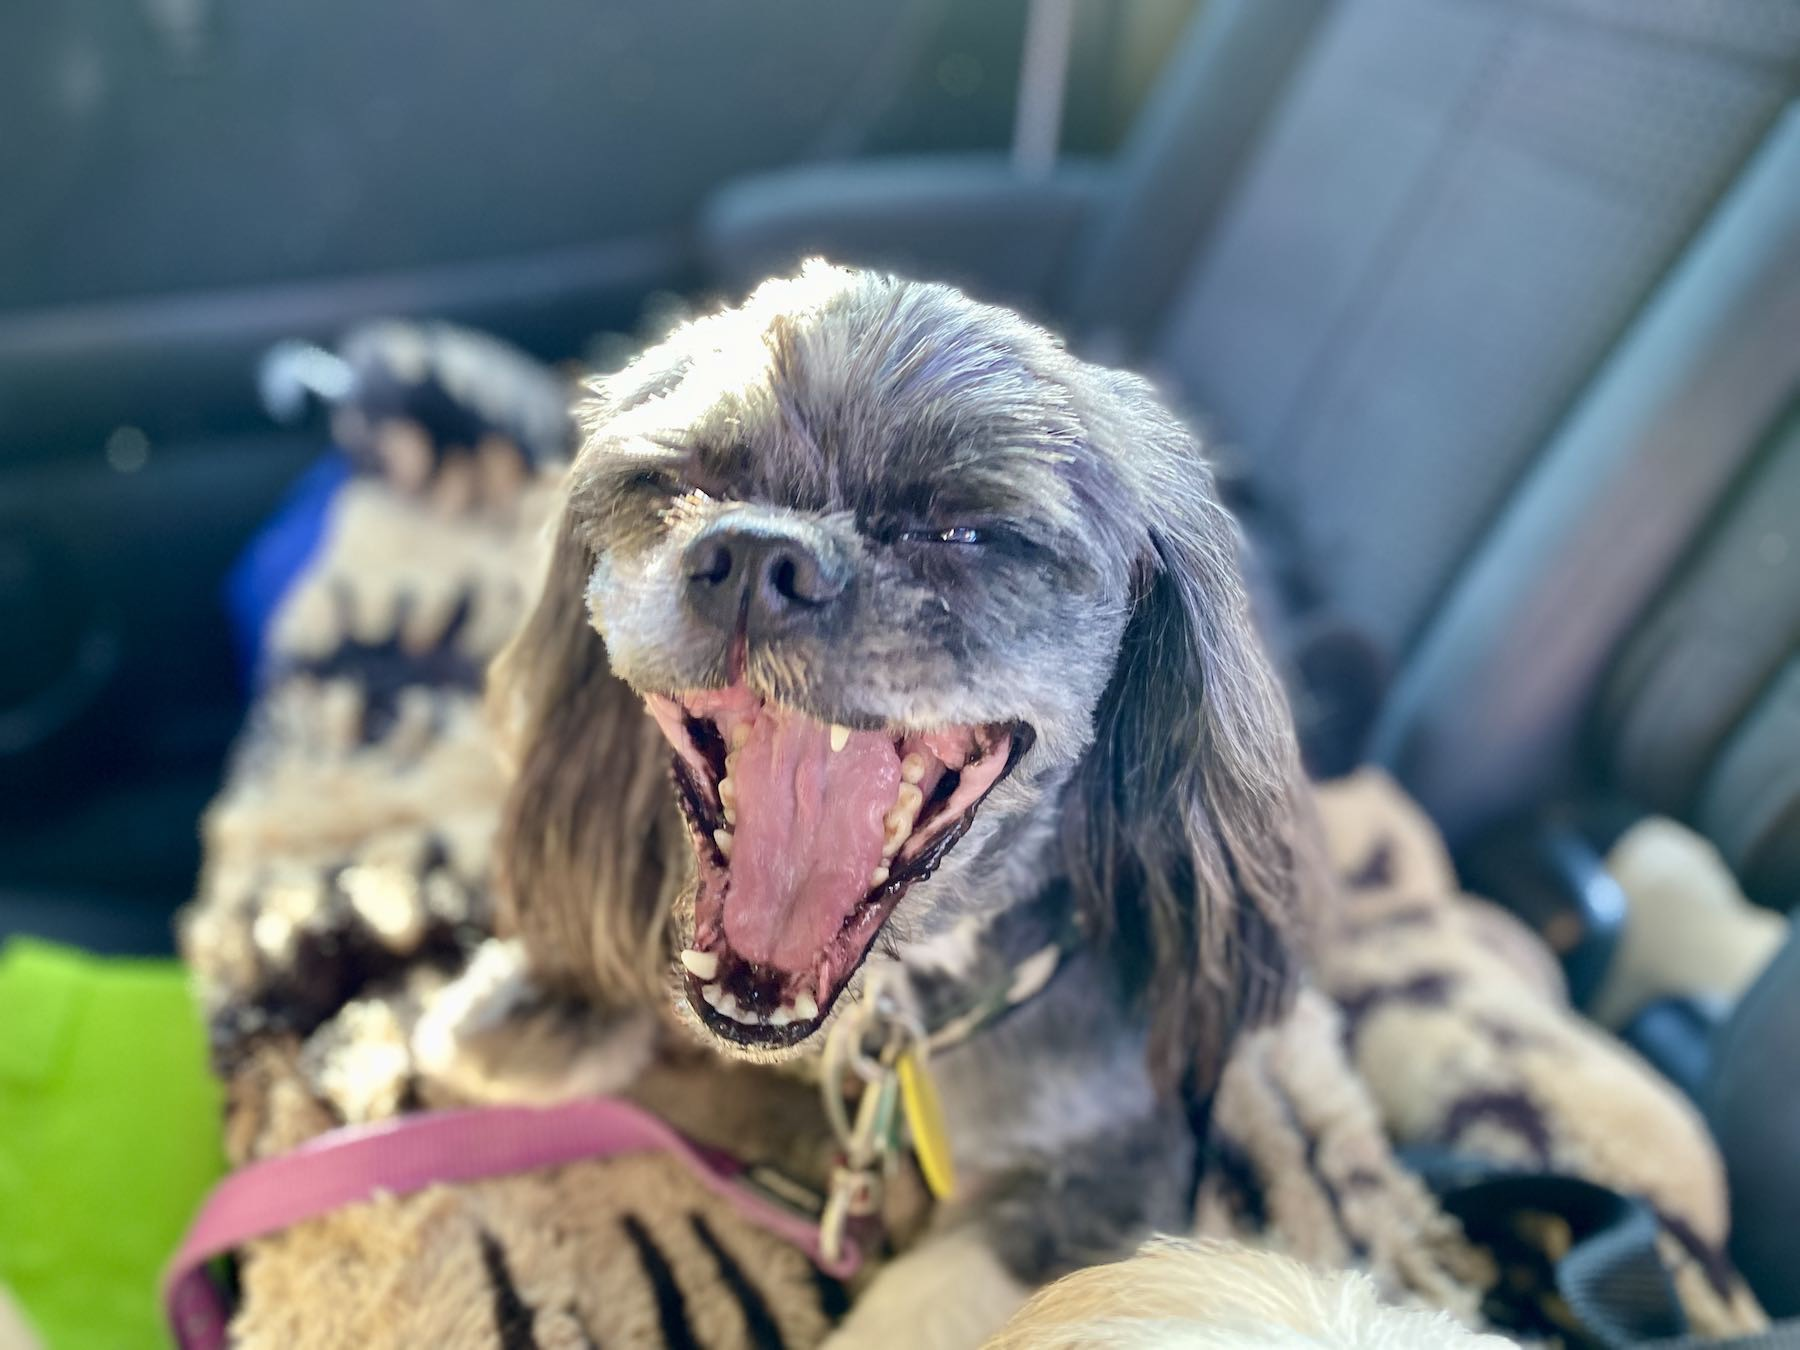 Small black freshly-groomed dog yawning.